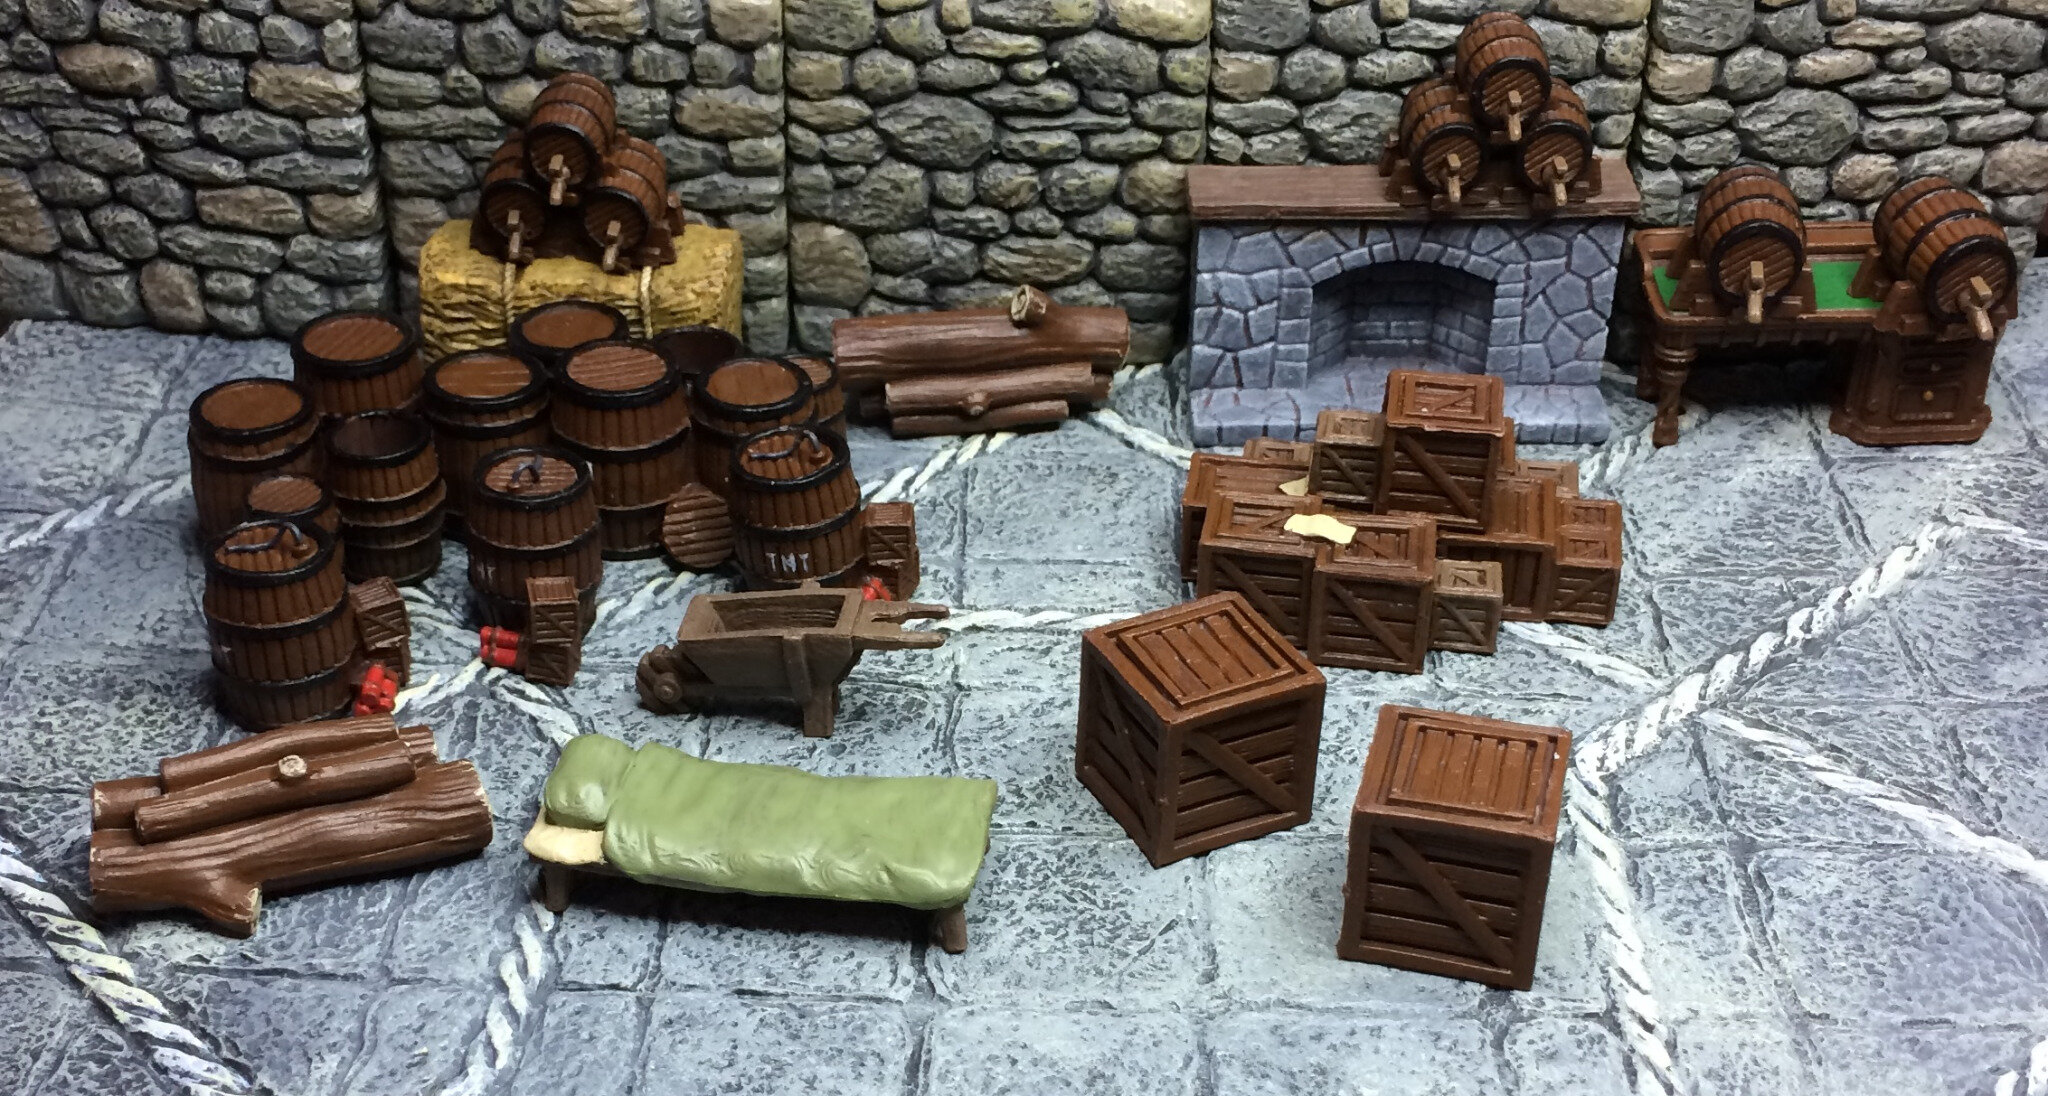 Peindre Decor Warhammer Fast And Furious Peinture Du Terrain Crate Aventures En 25 Mm